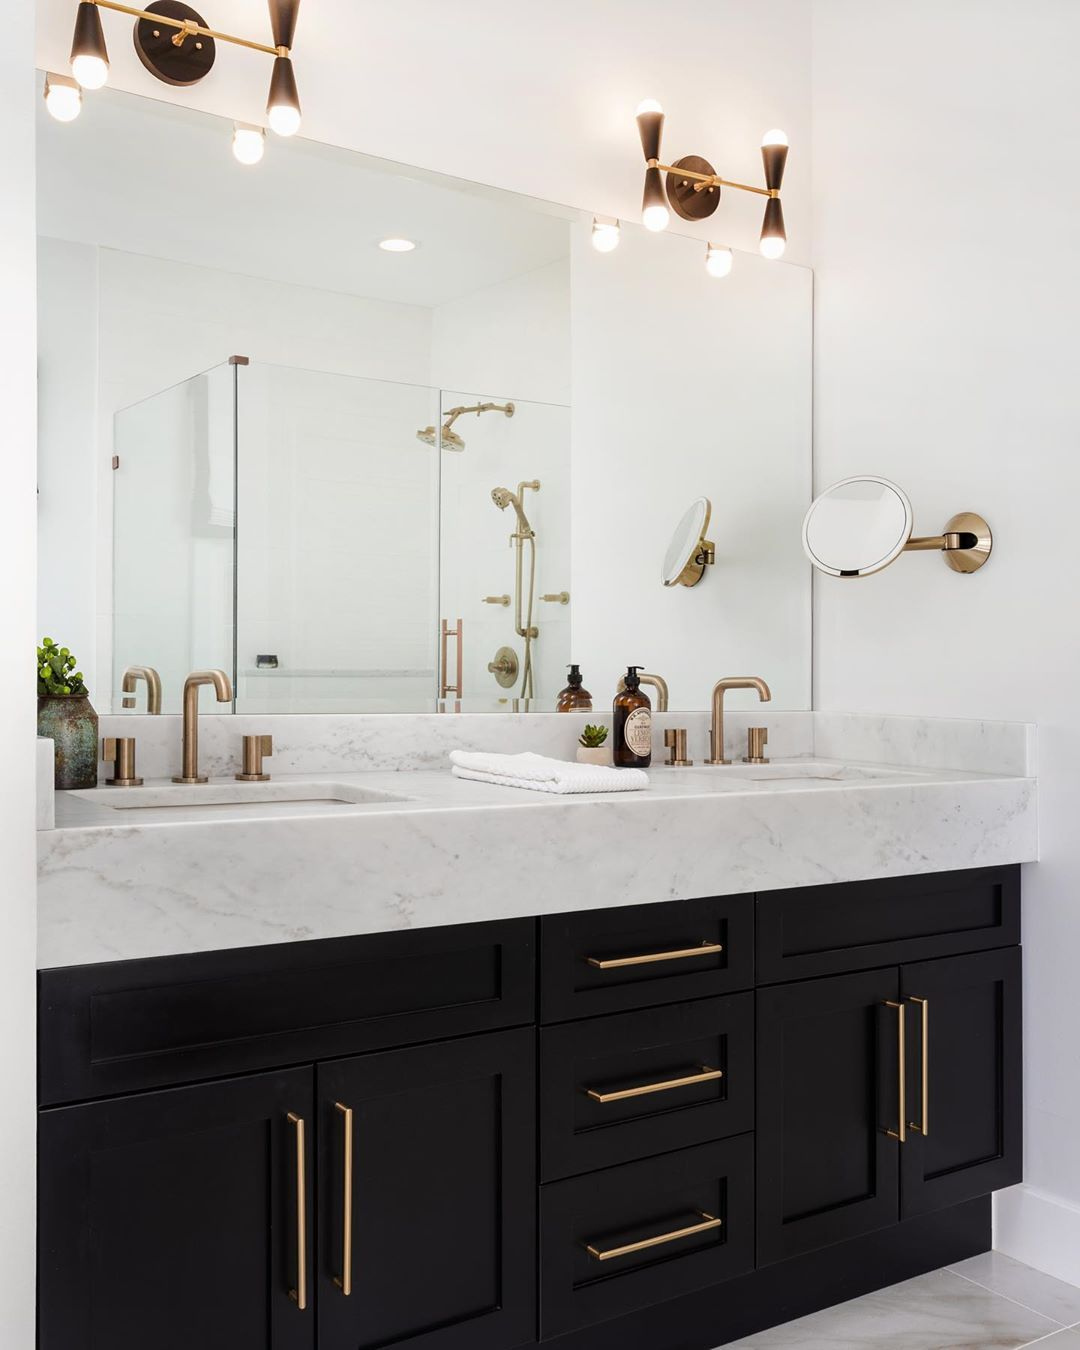 Devon Grace Interiors On Instagram Proof That You Can Still Have A Light And Airy Ba In 2020 Bathroom Interior Design Black Cabinets Bathroom Bathroom Remodel Master